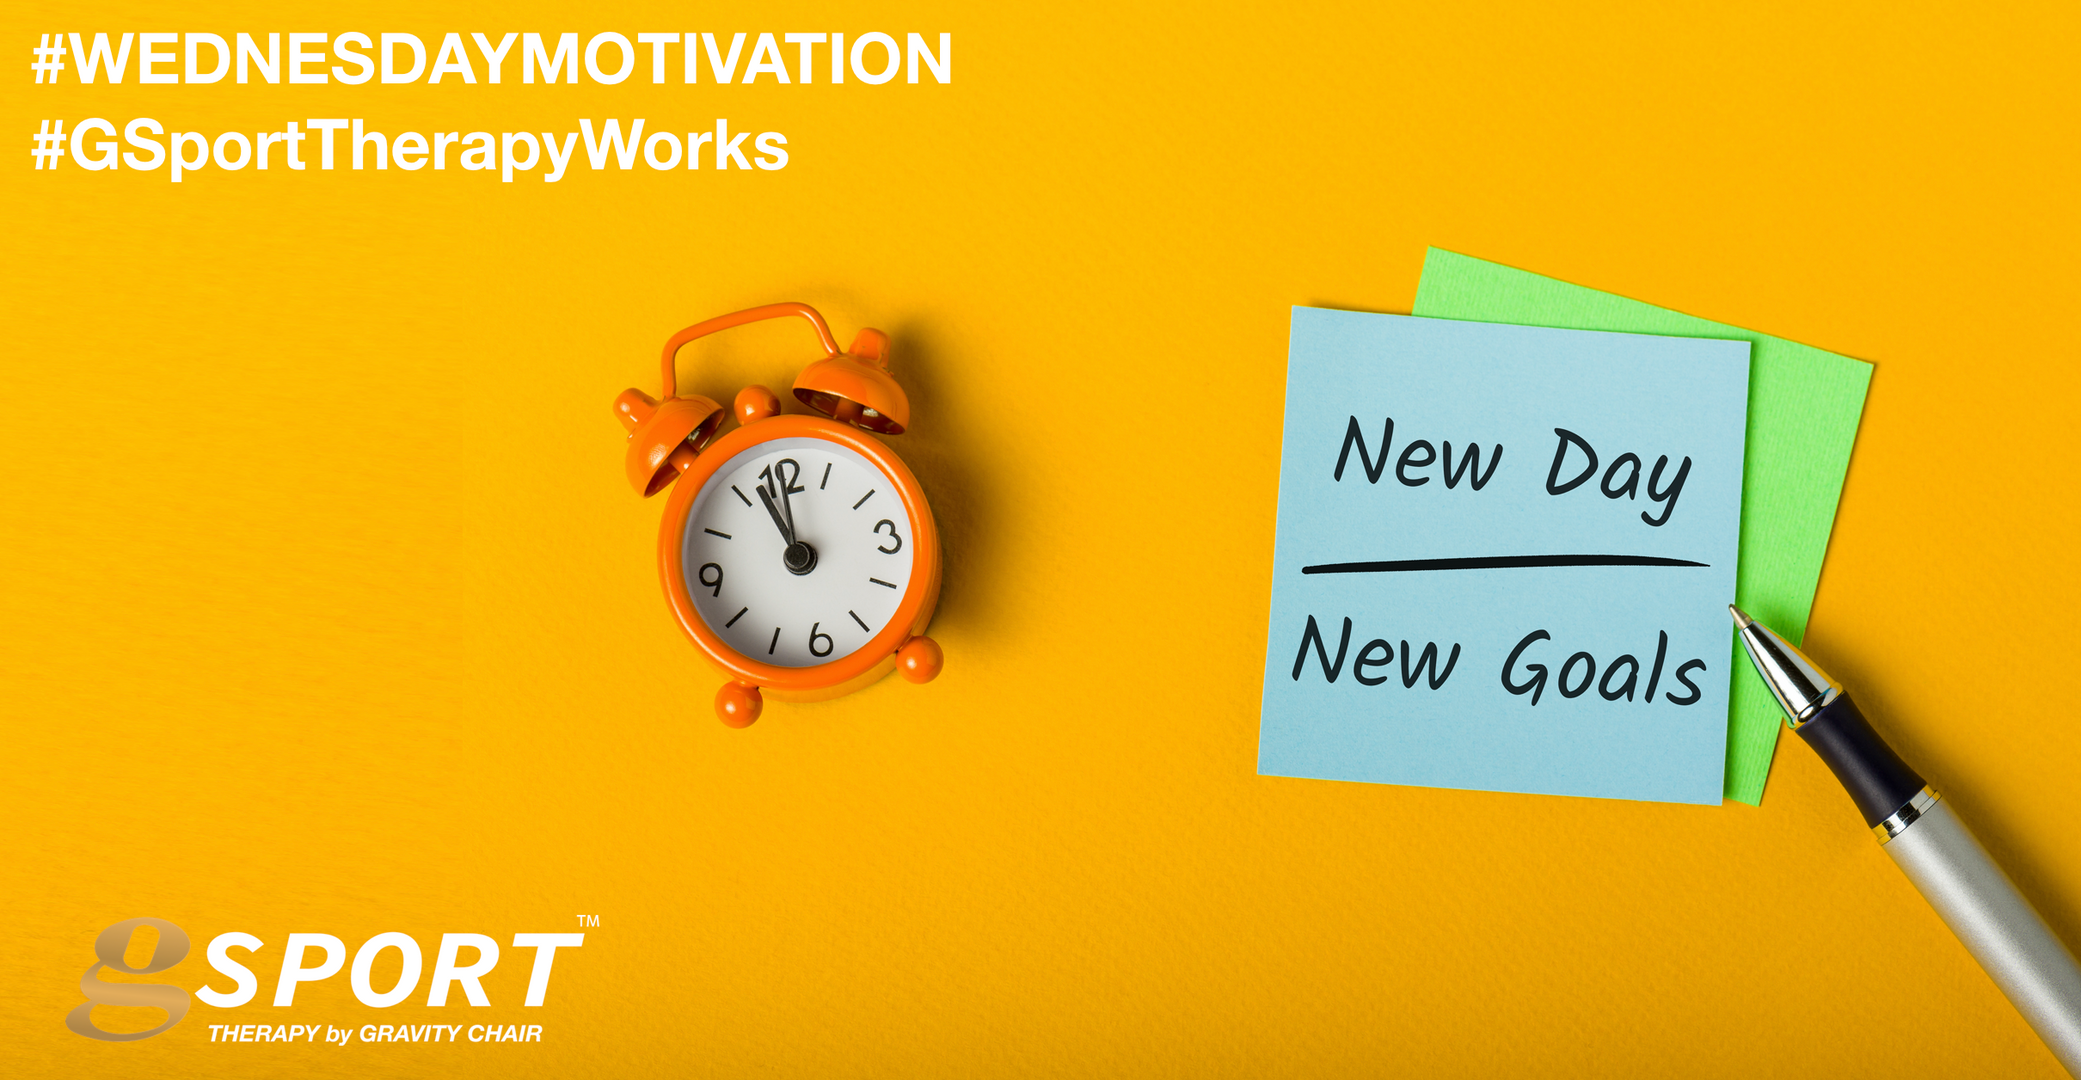 GSPORT_WEDNESDAY MOTIVATION 01.png